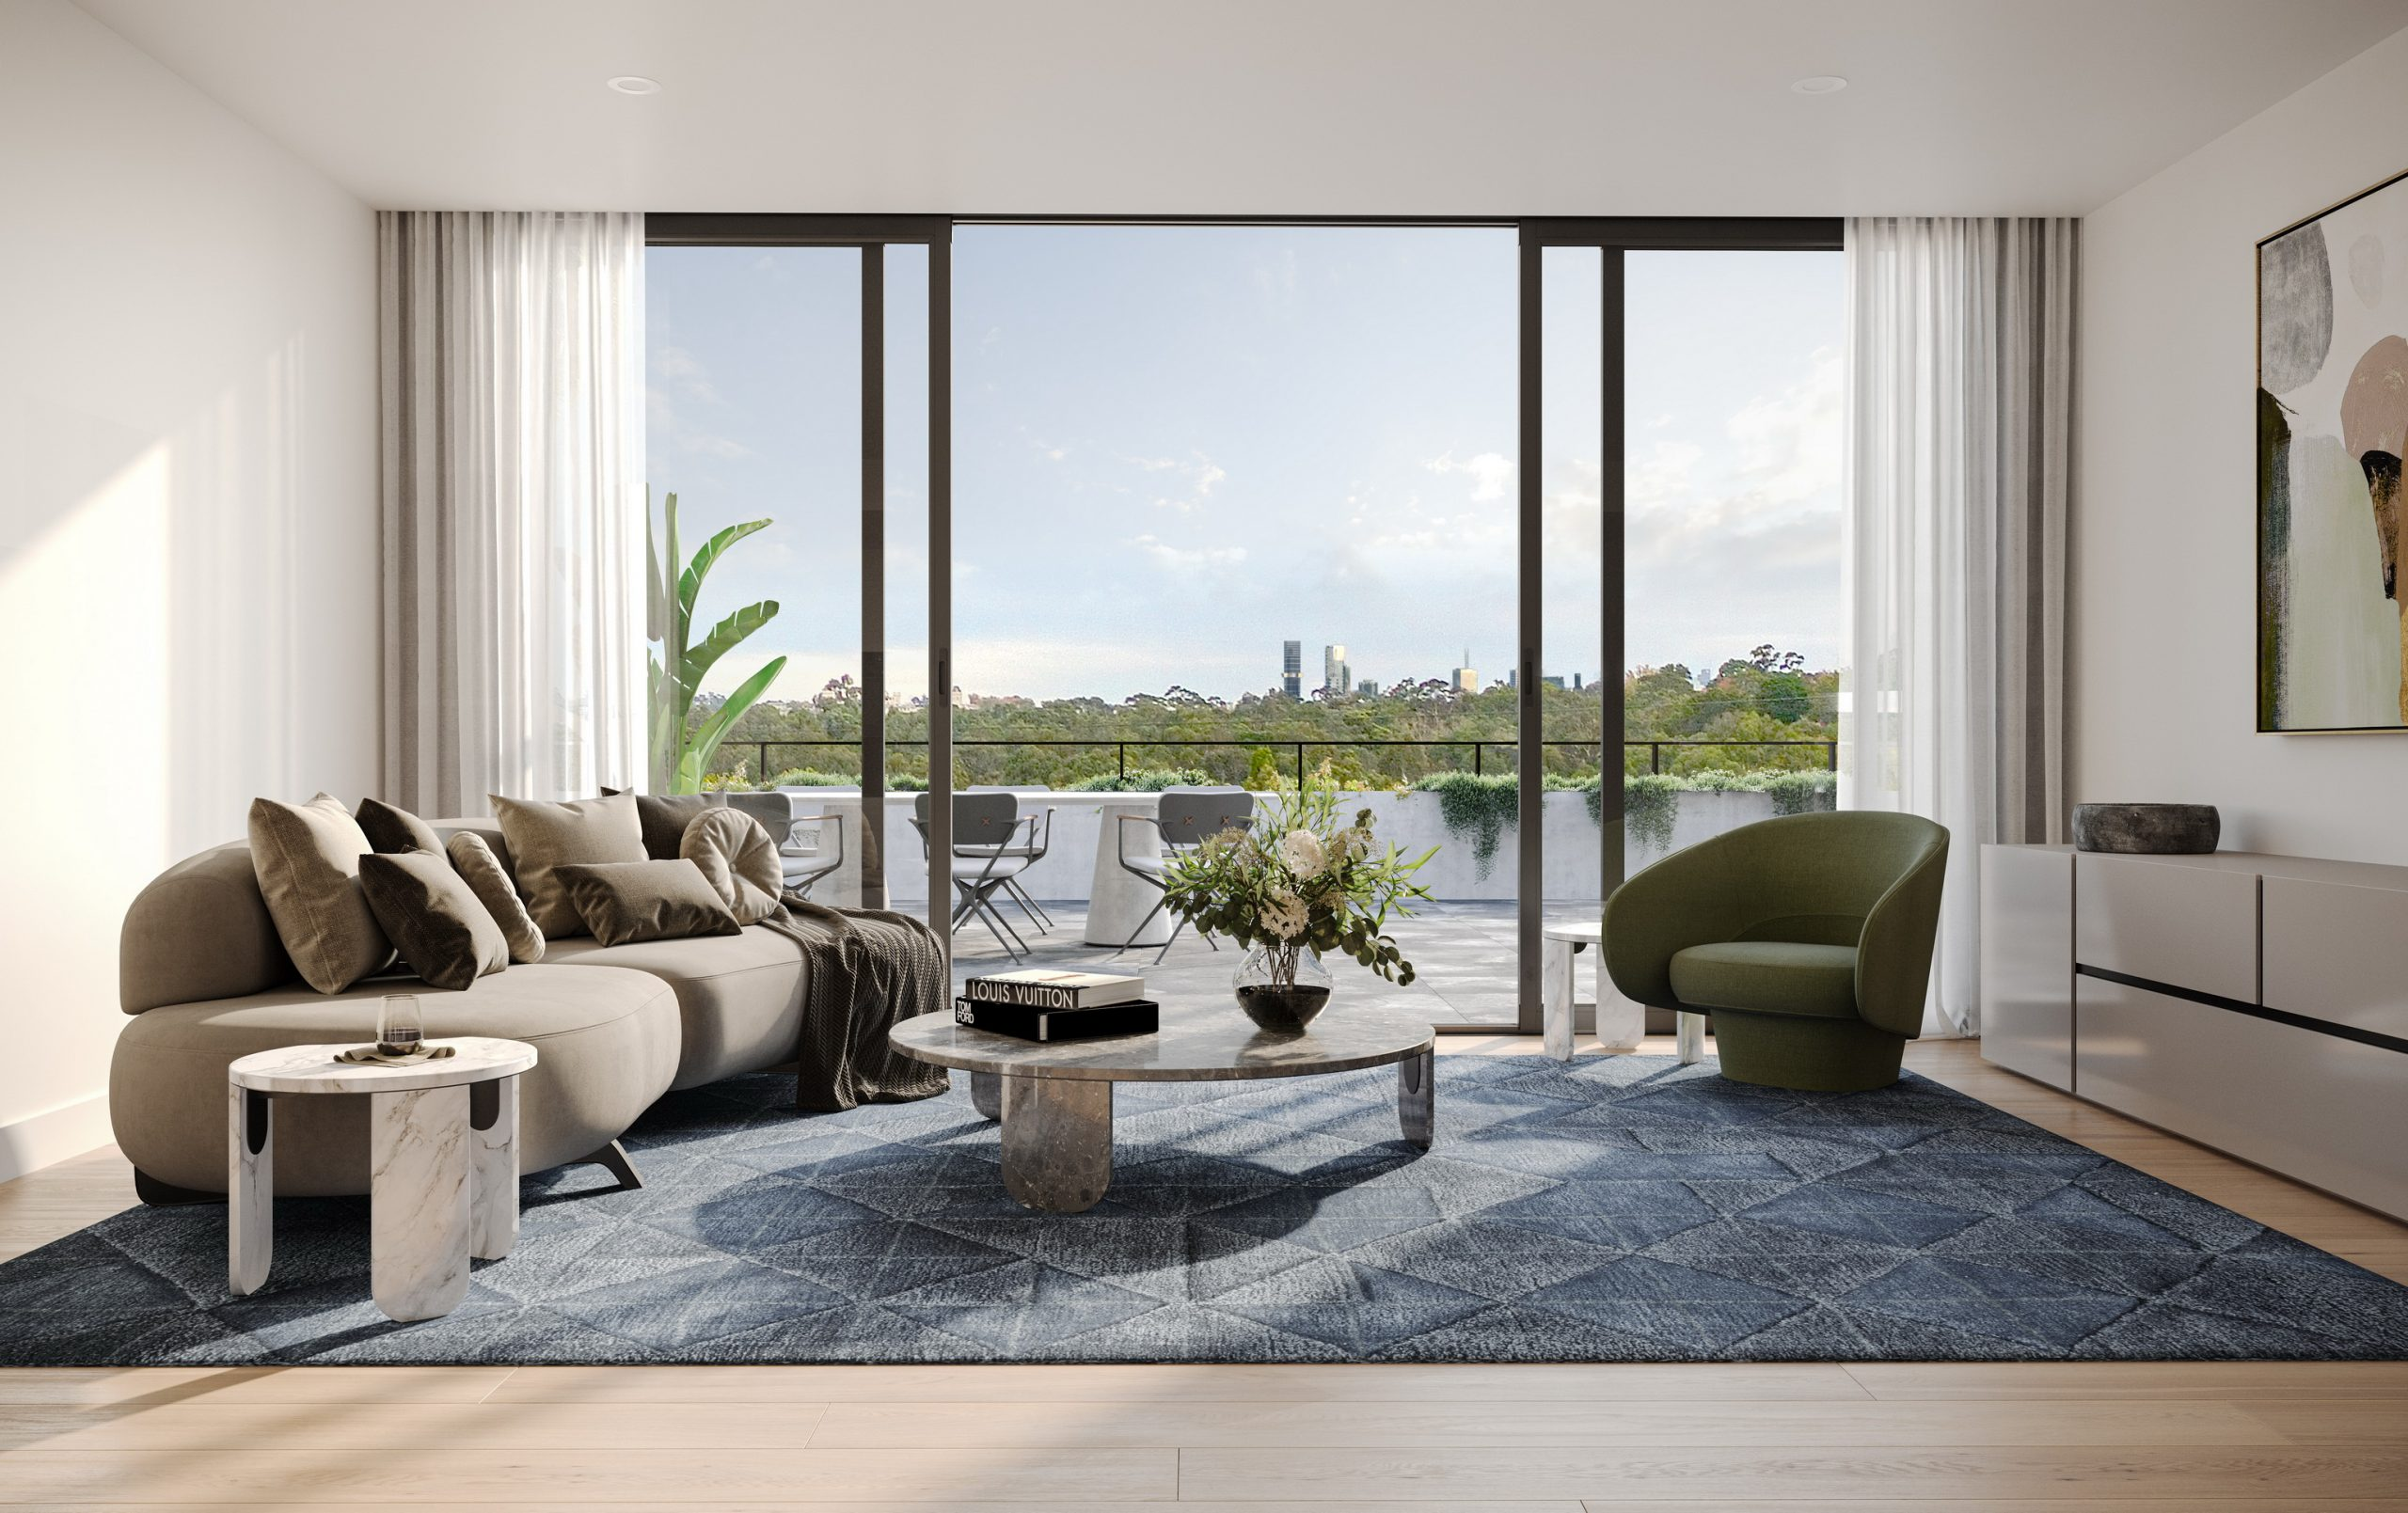 fkd-studio-render-architecture-image-the-grounds-interior-ivanhoe-residential-view-balcony